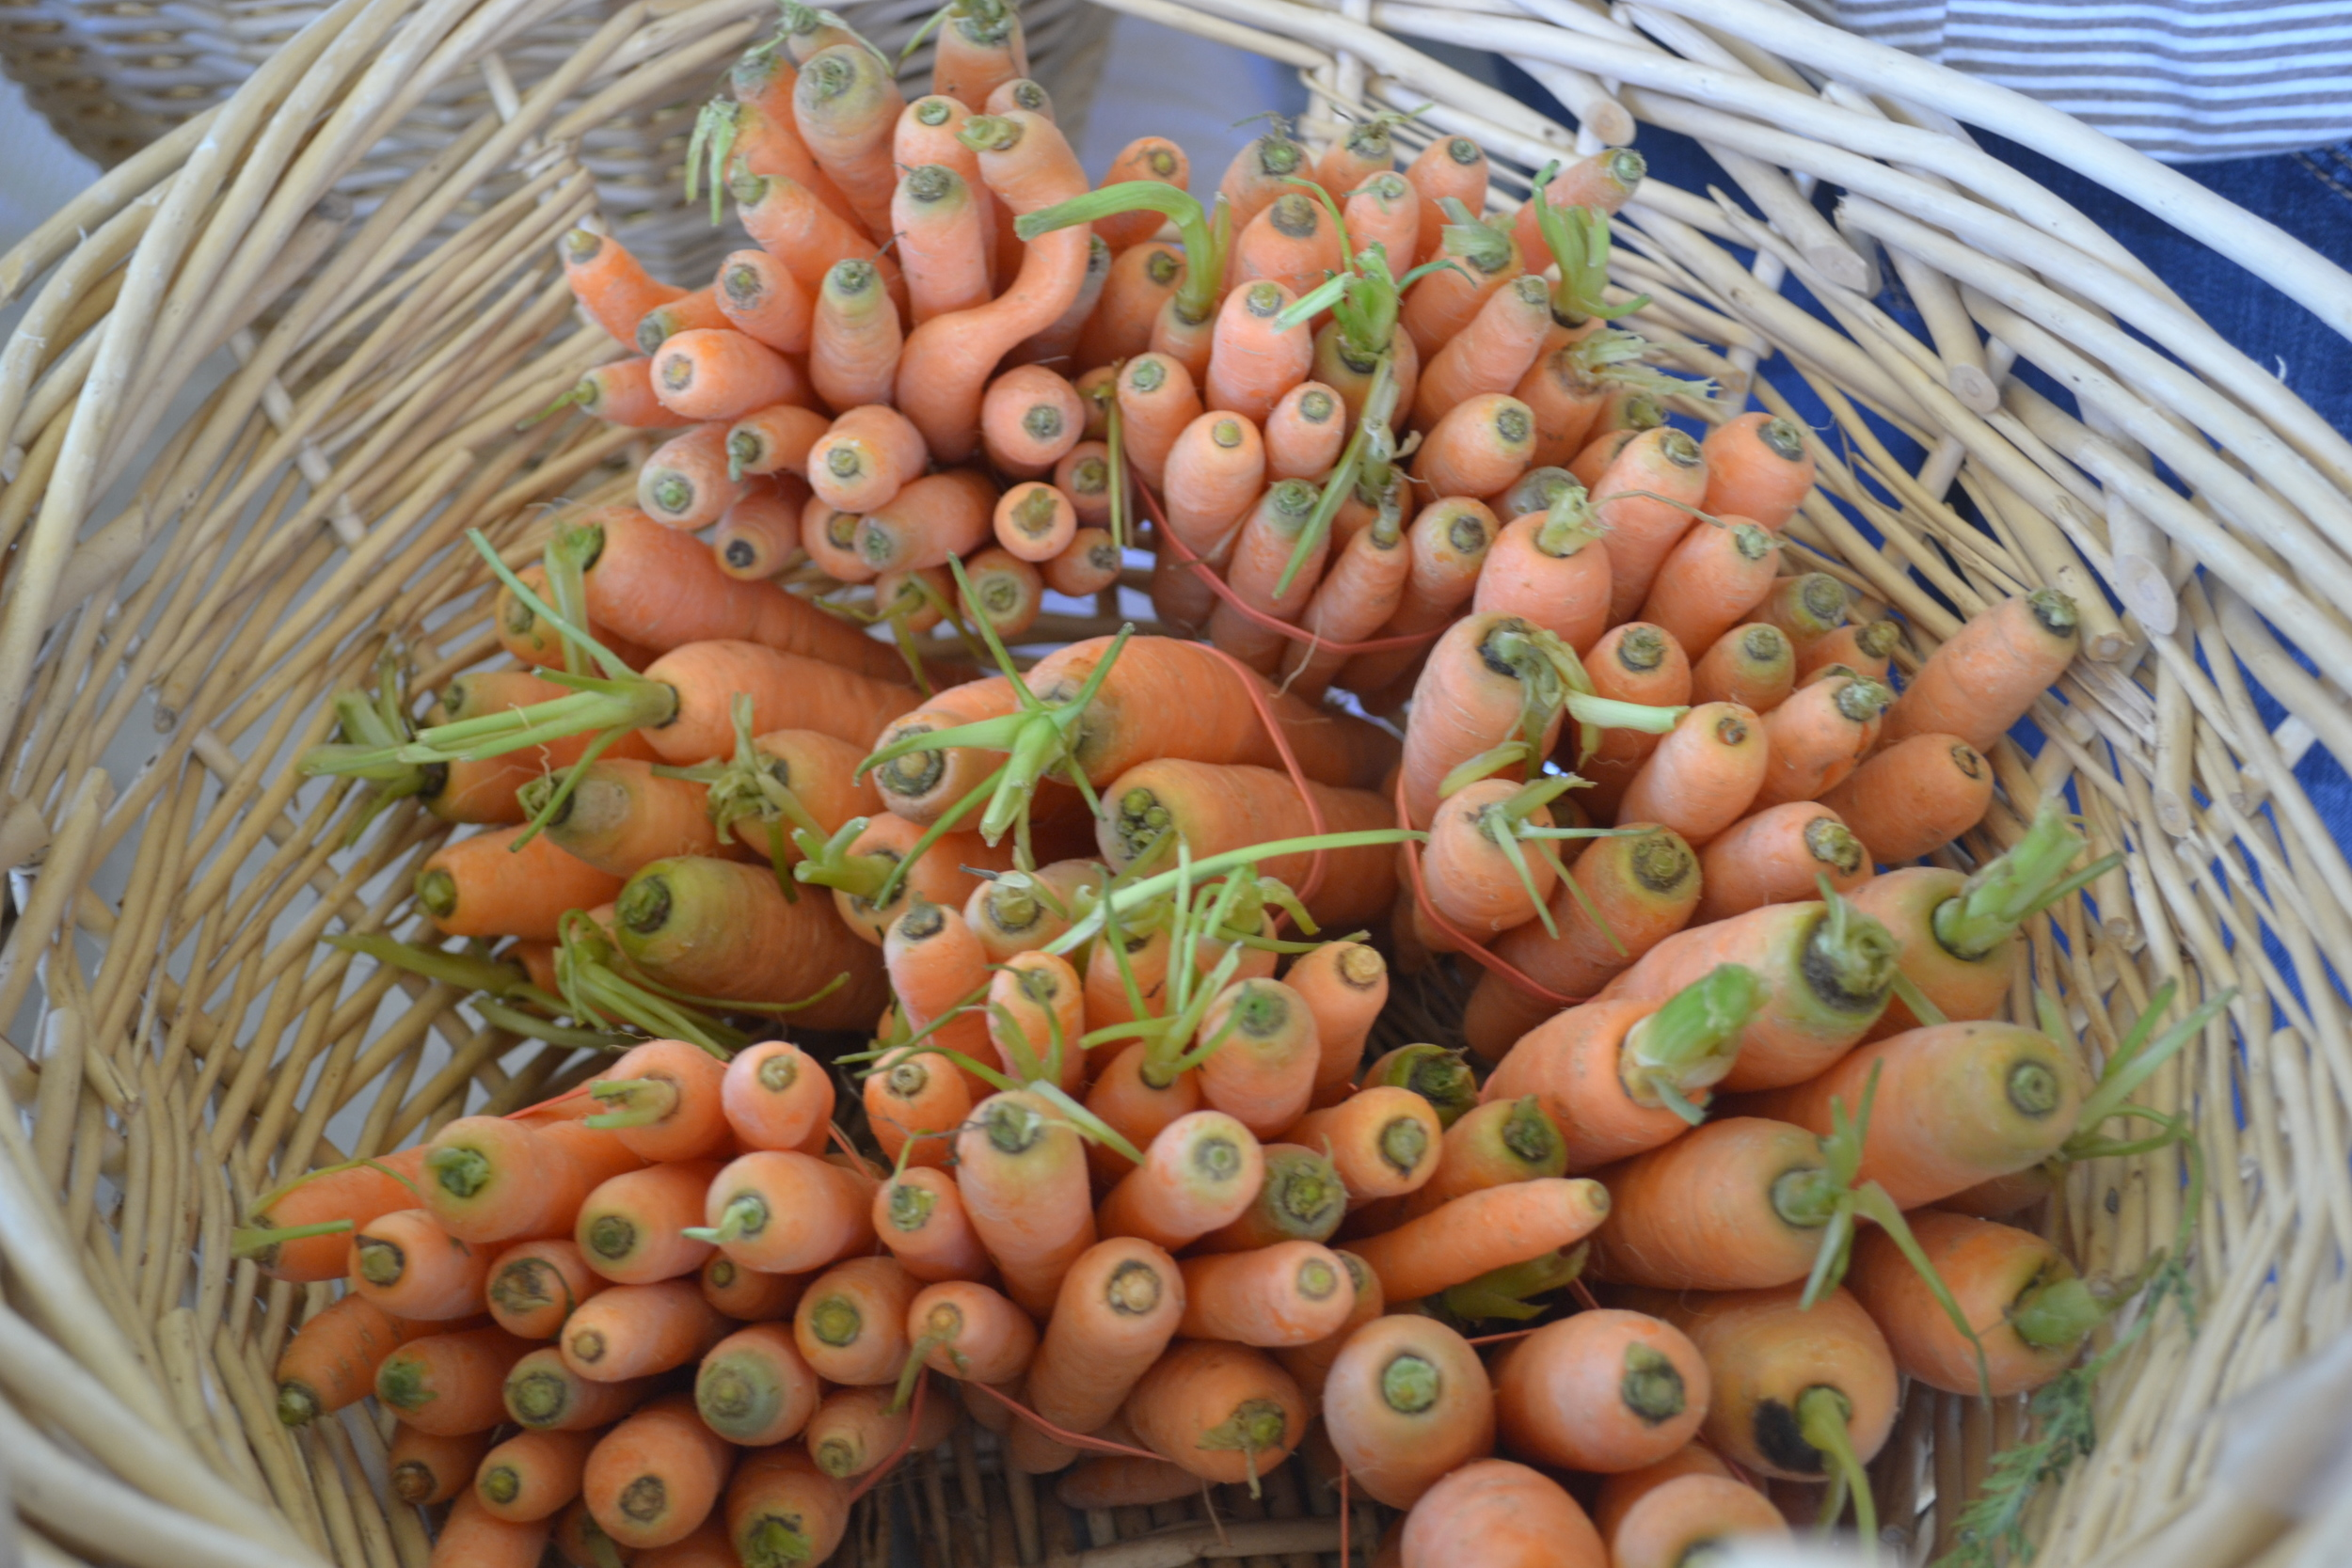 Carrots at the farmers' market in Colorado.